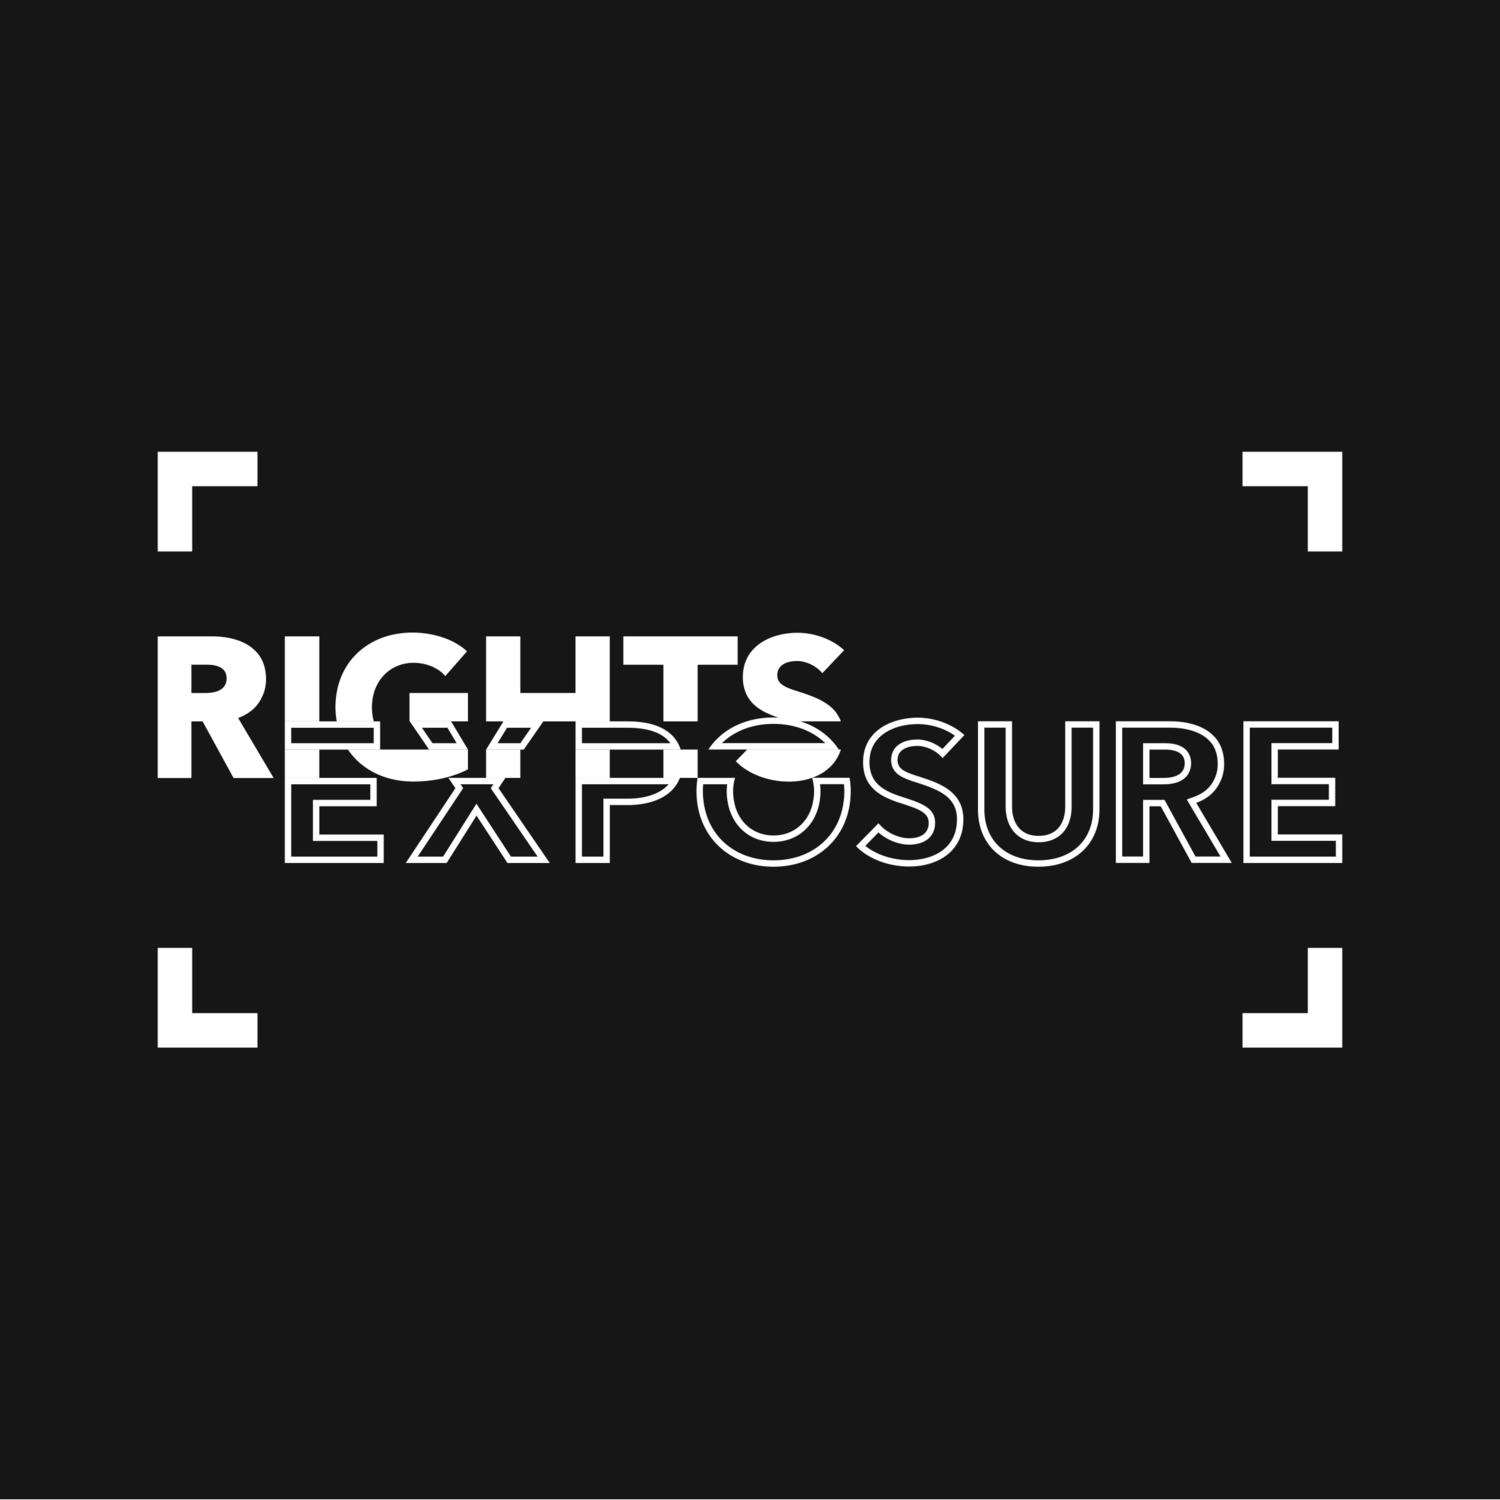 Rights Exposure